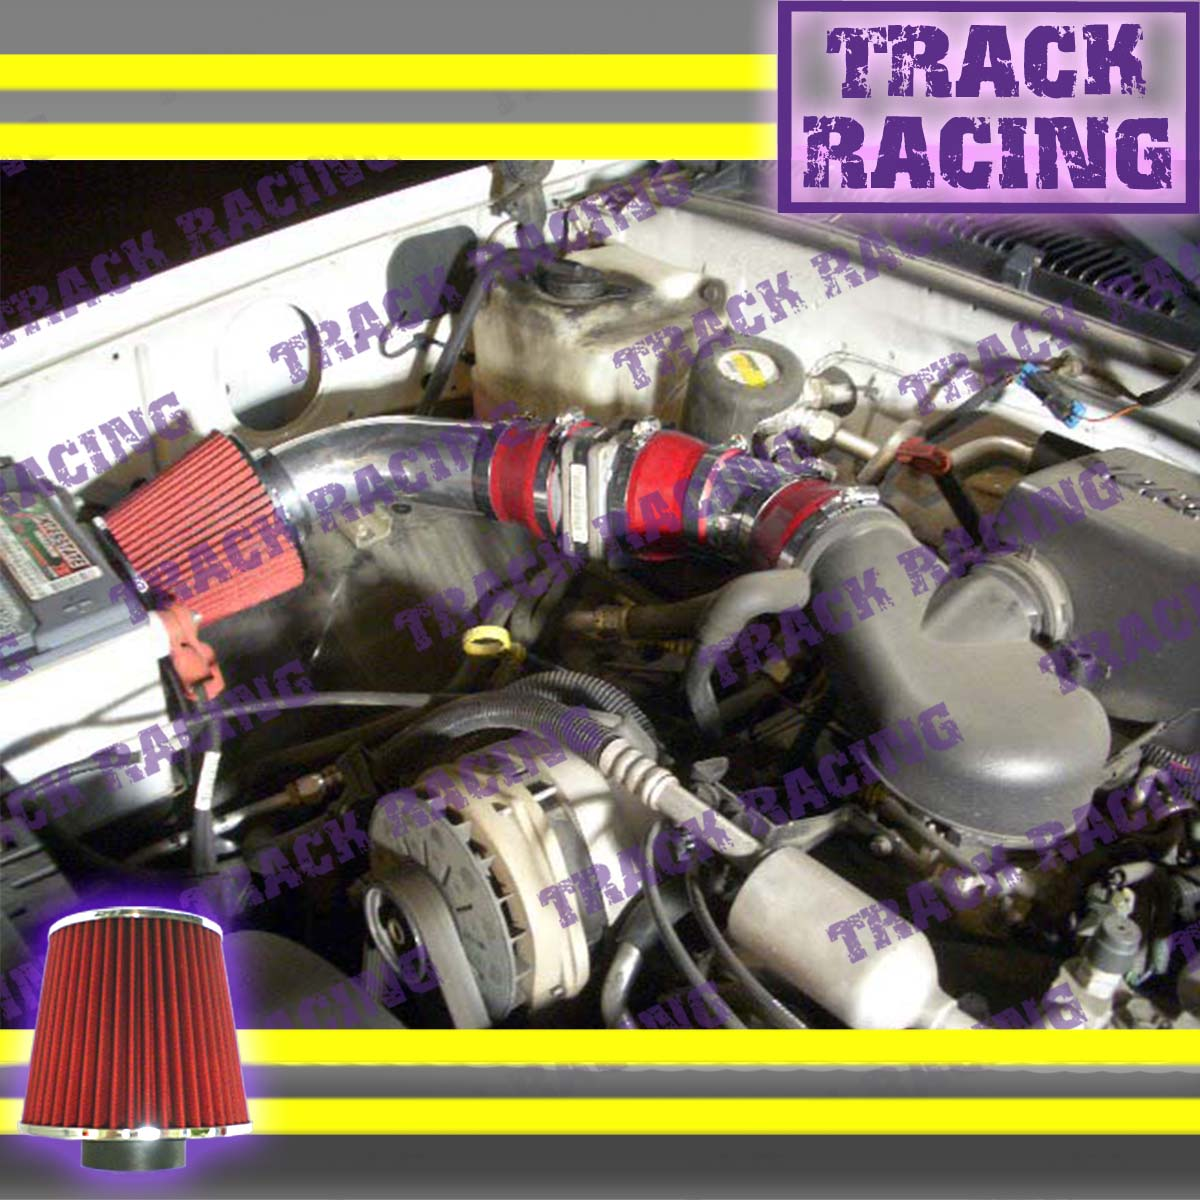 Stunning 98 Chevy Engine Photos Electrical And Wiring